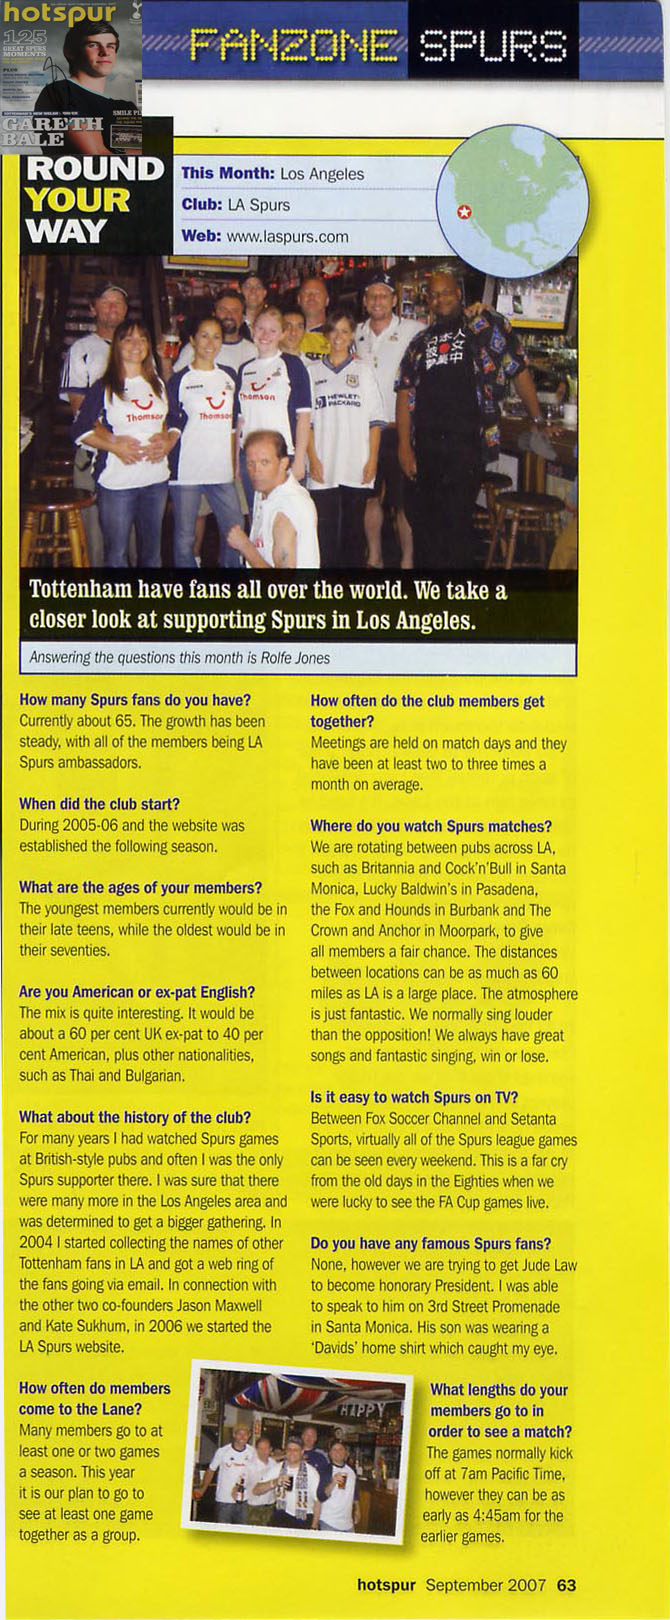 L.A. Spurs in Hotspur Magazine for the first time! Rolfe Jones answered the questions about L.A. Spurs in September 2007 issue of Hotspur Magazine (Editor-In-Chief, Chris Hunt)